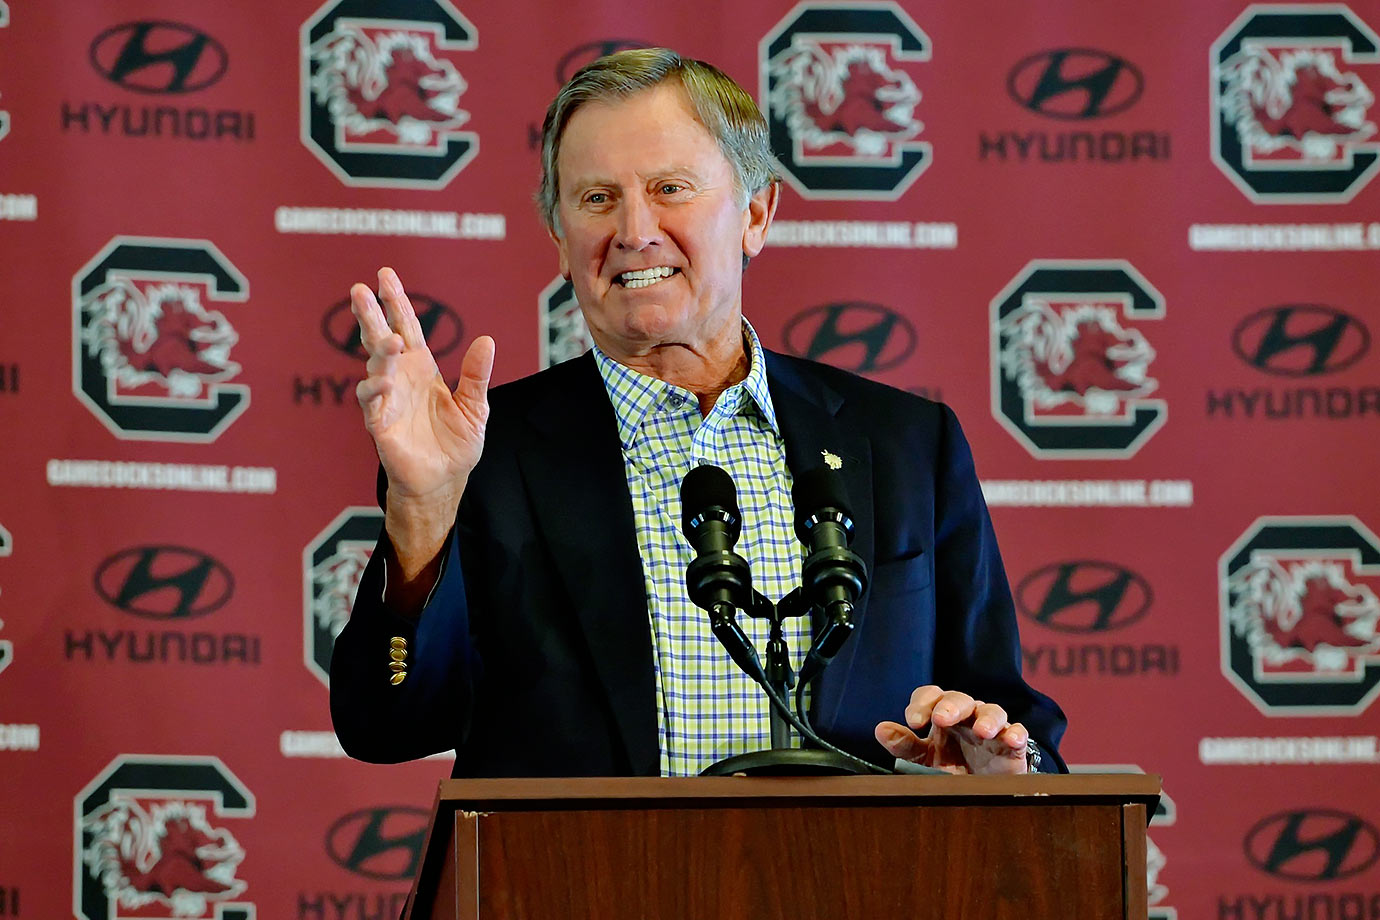 Spurrier realized things weren't going South Carolina's way this season, so he just up and quit after six games.